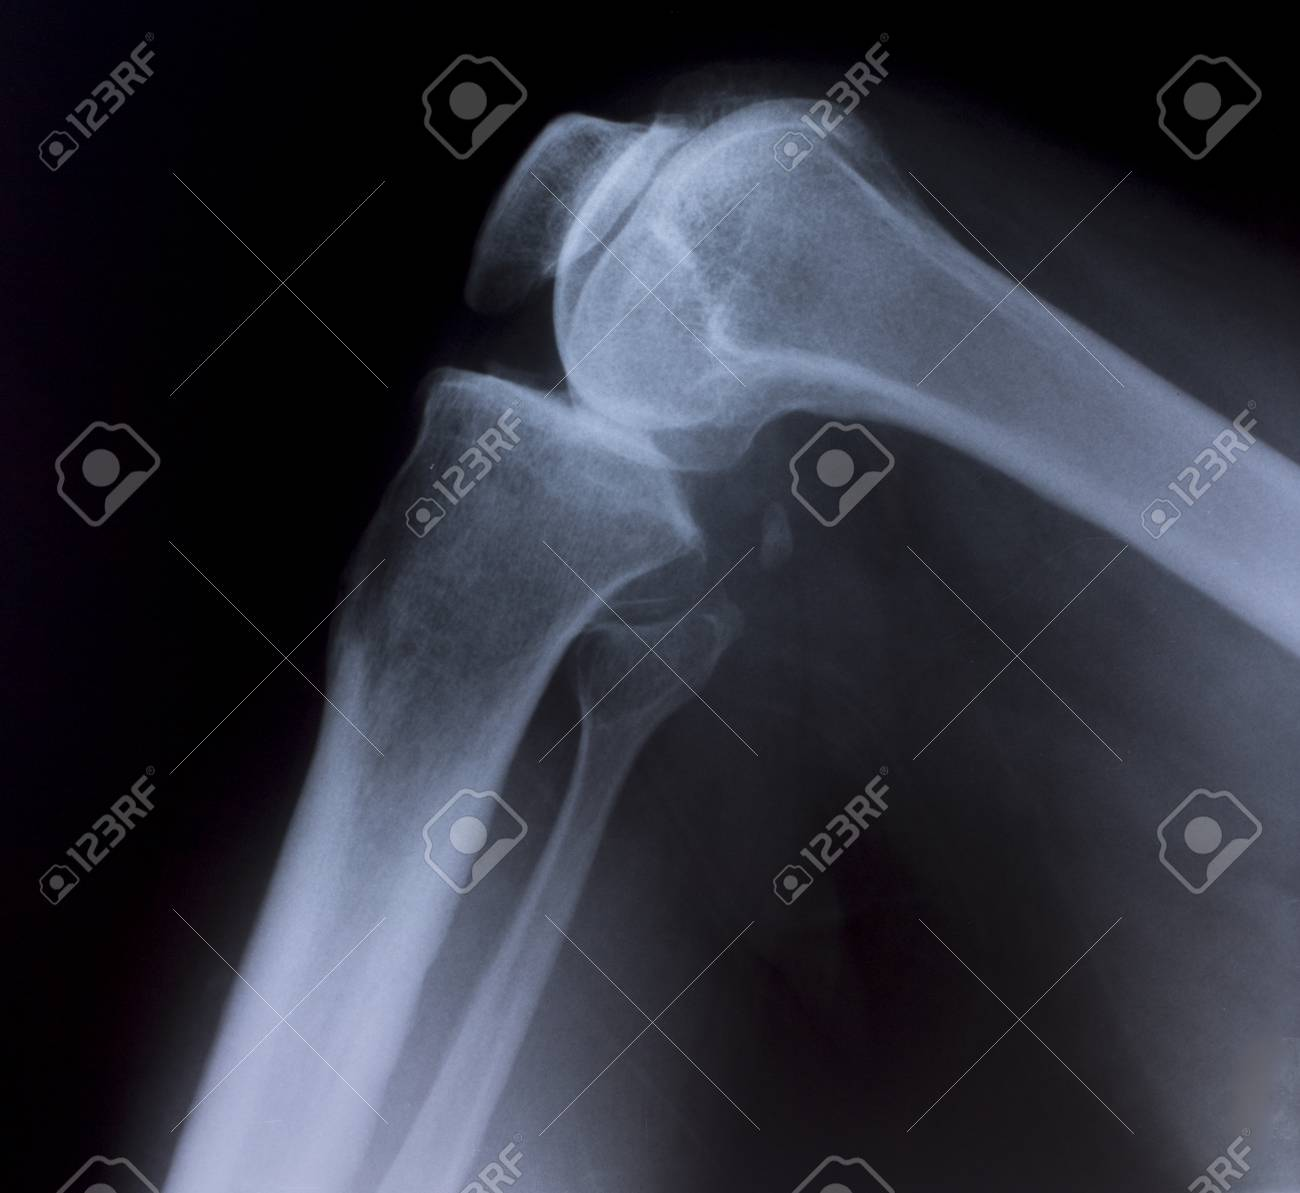 X-Ray Image Of Human Chest for a medical diagnosis Stock Photo - 26483268